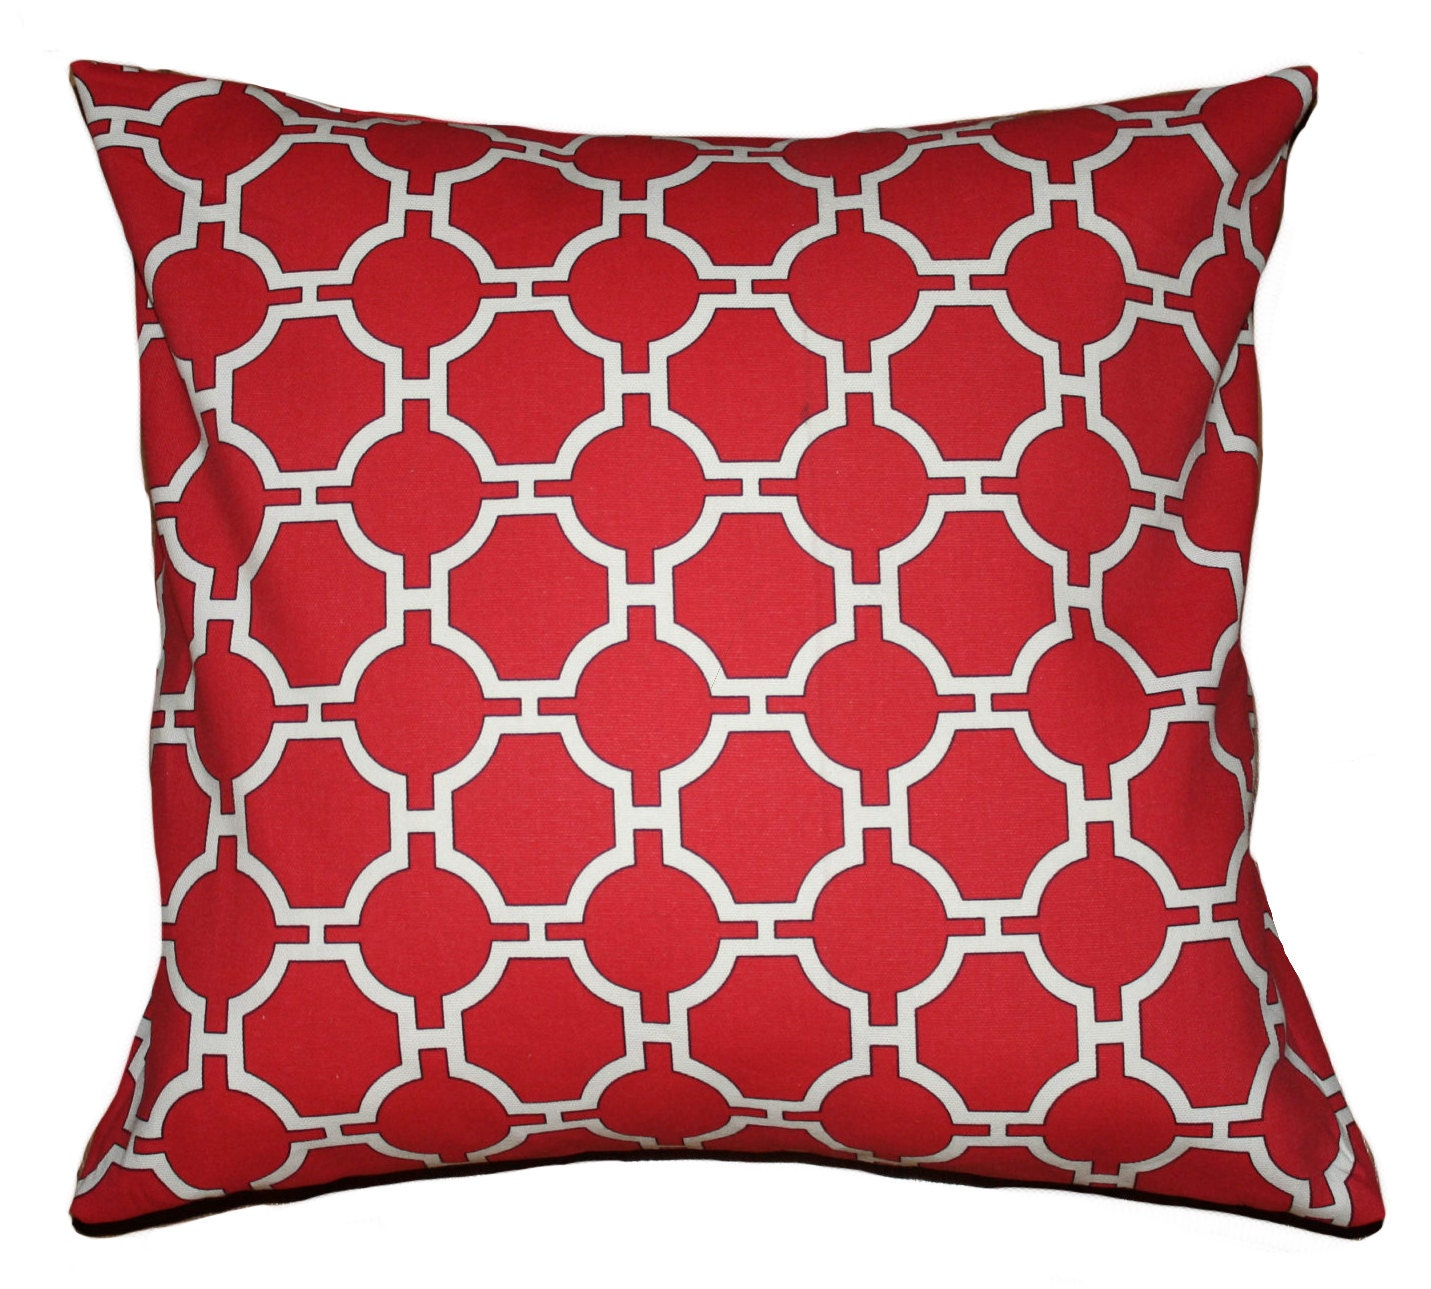 "Red Pillow Cover Geometric Pattern   20"" x 20"" - Crackerbox"